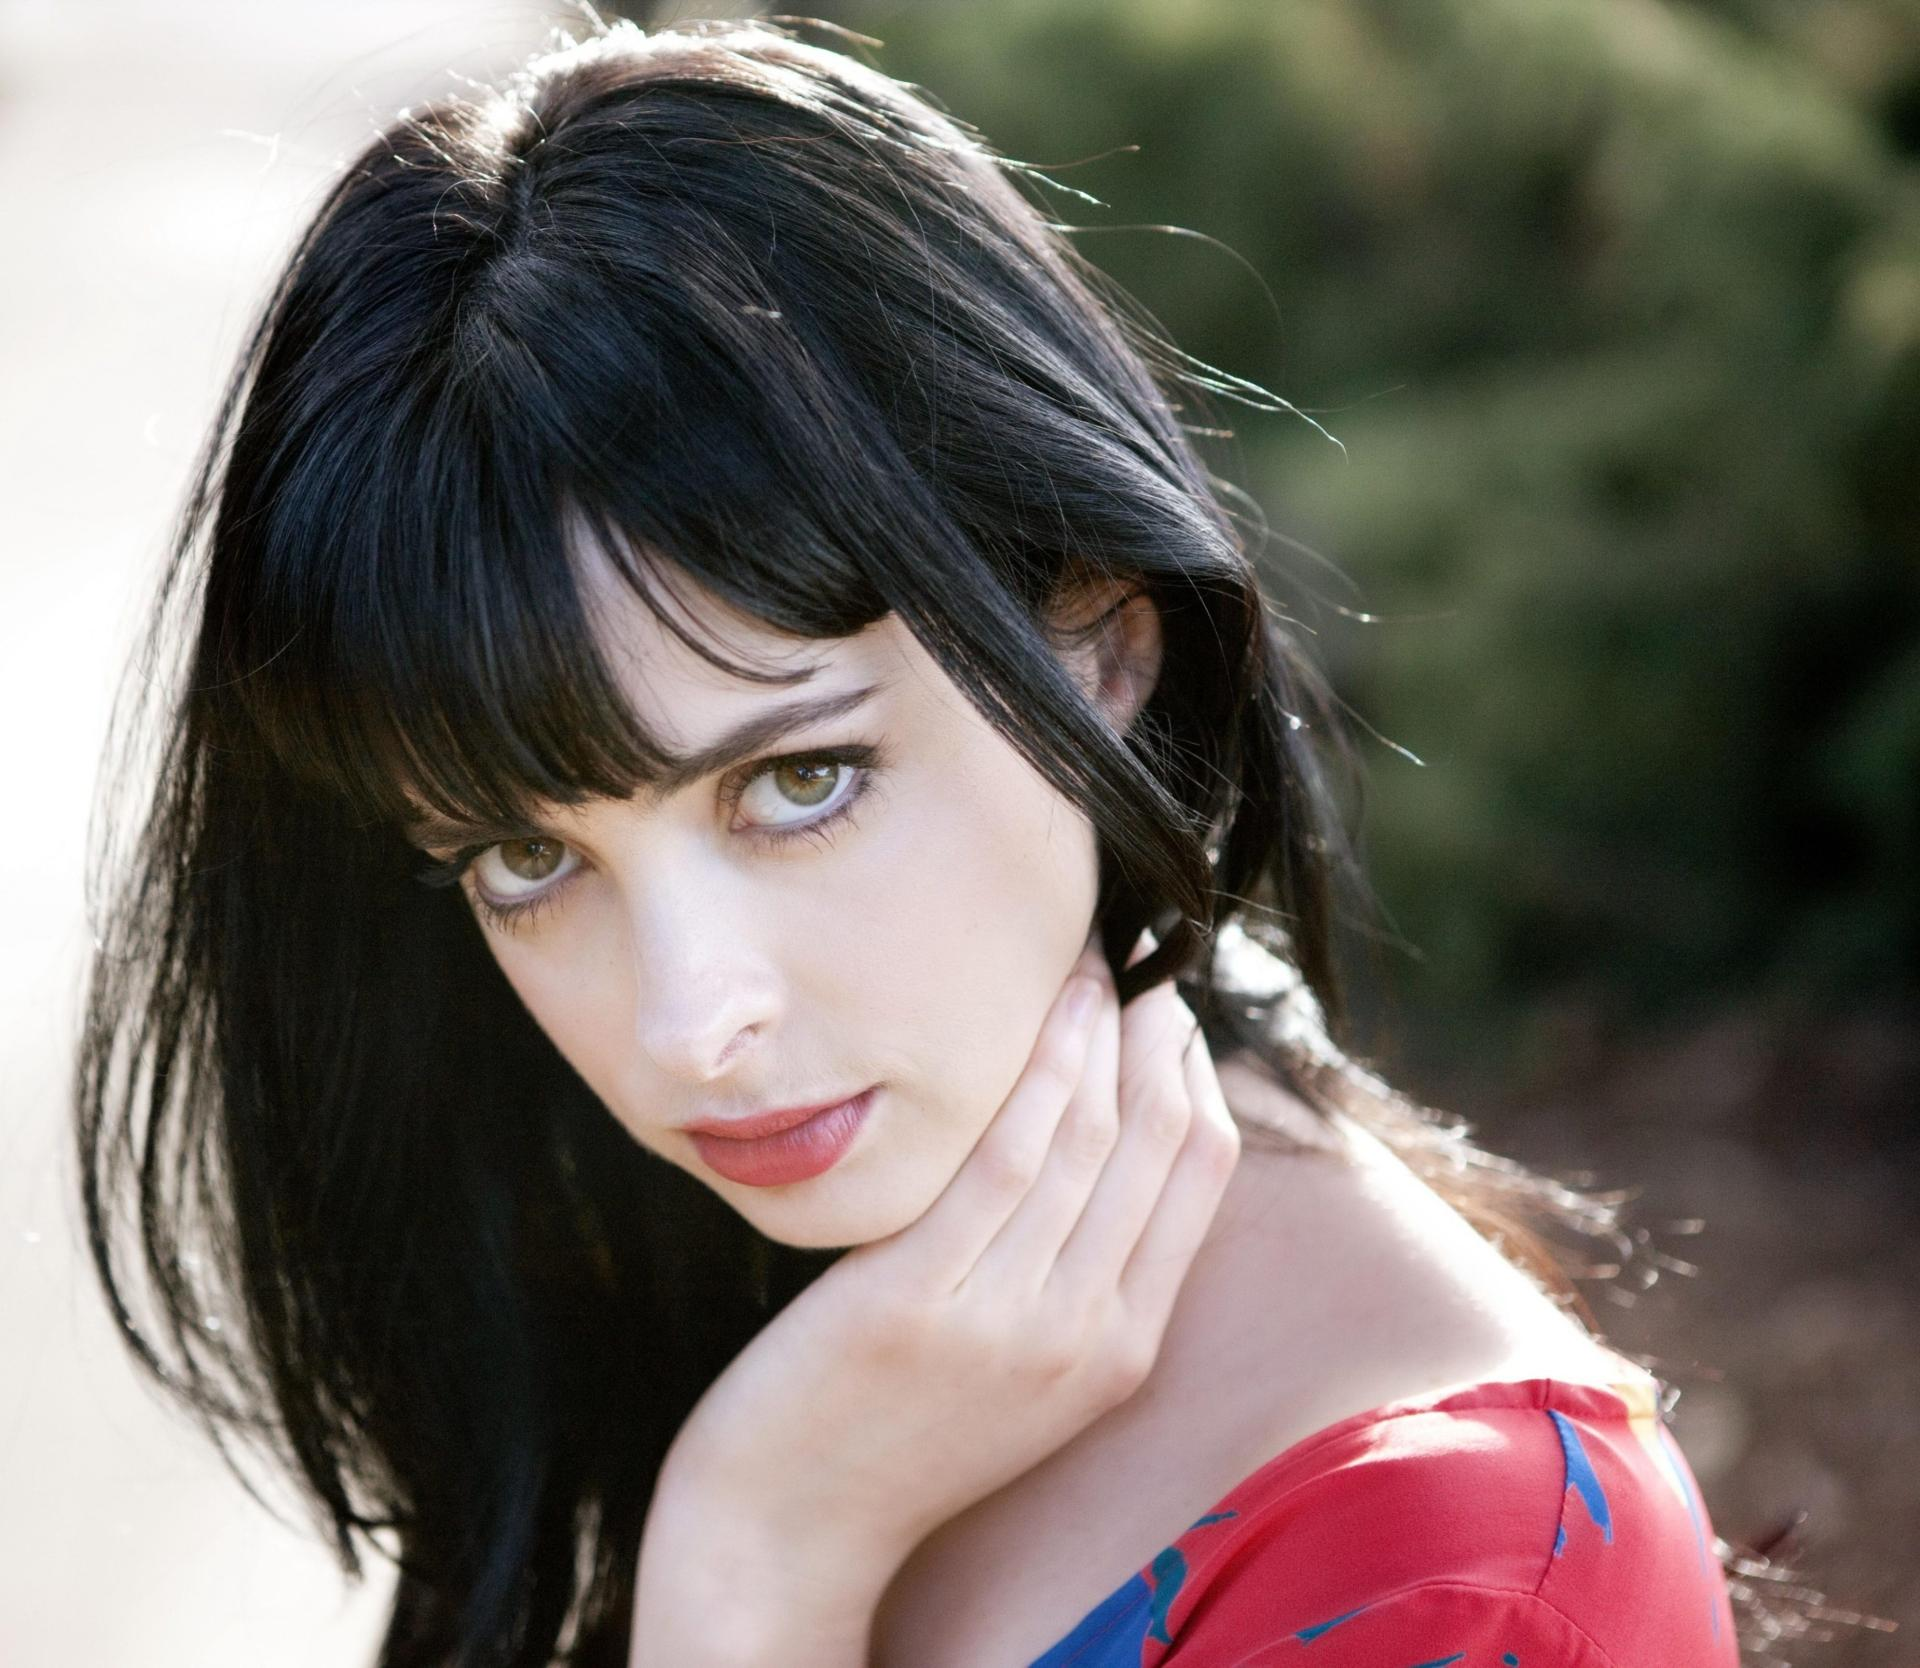 Krysten Ritter at 1024 x 1024 iPad size wallpapers HD quality